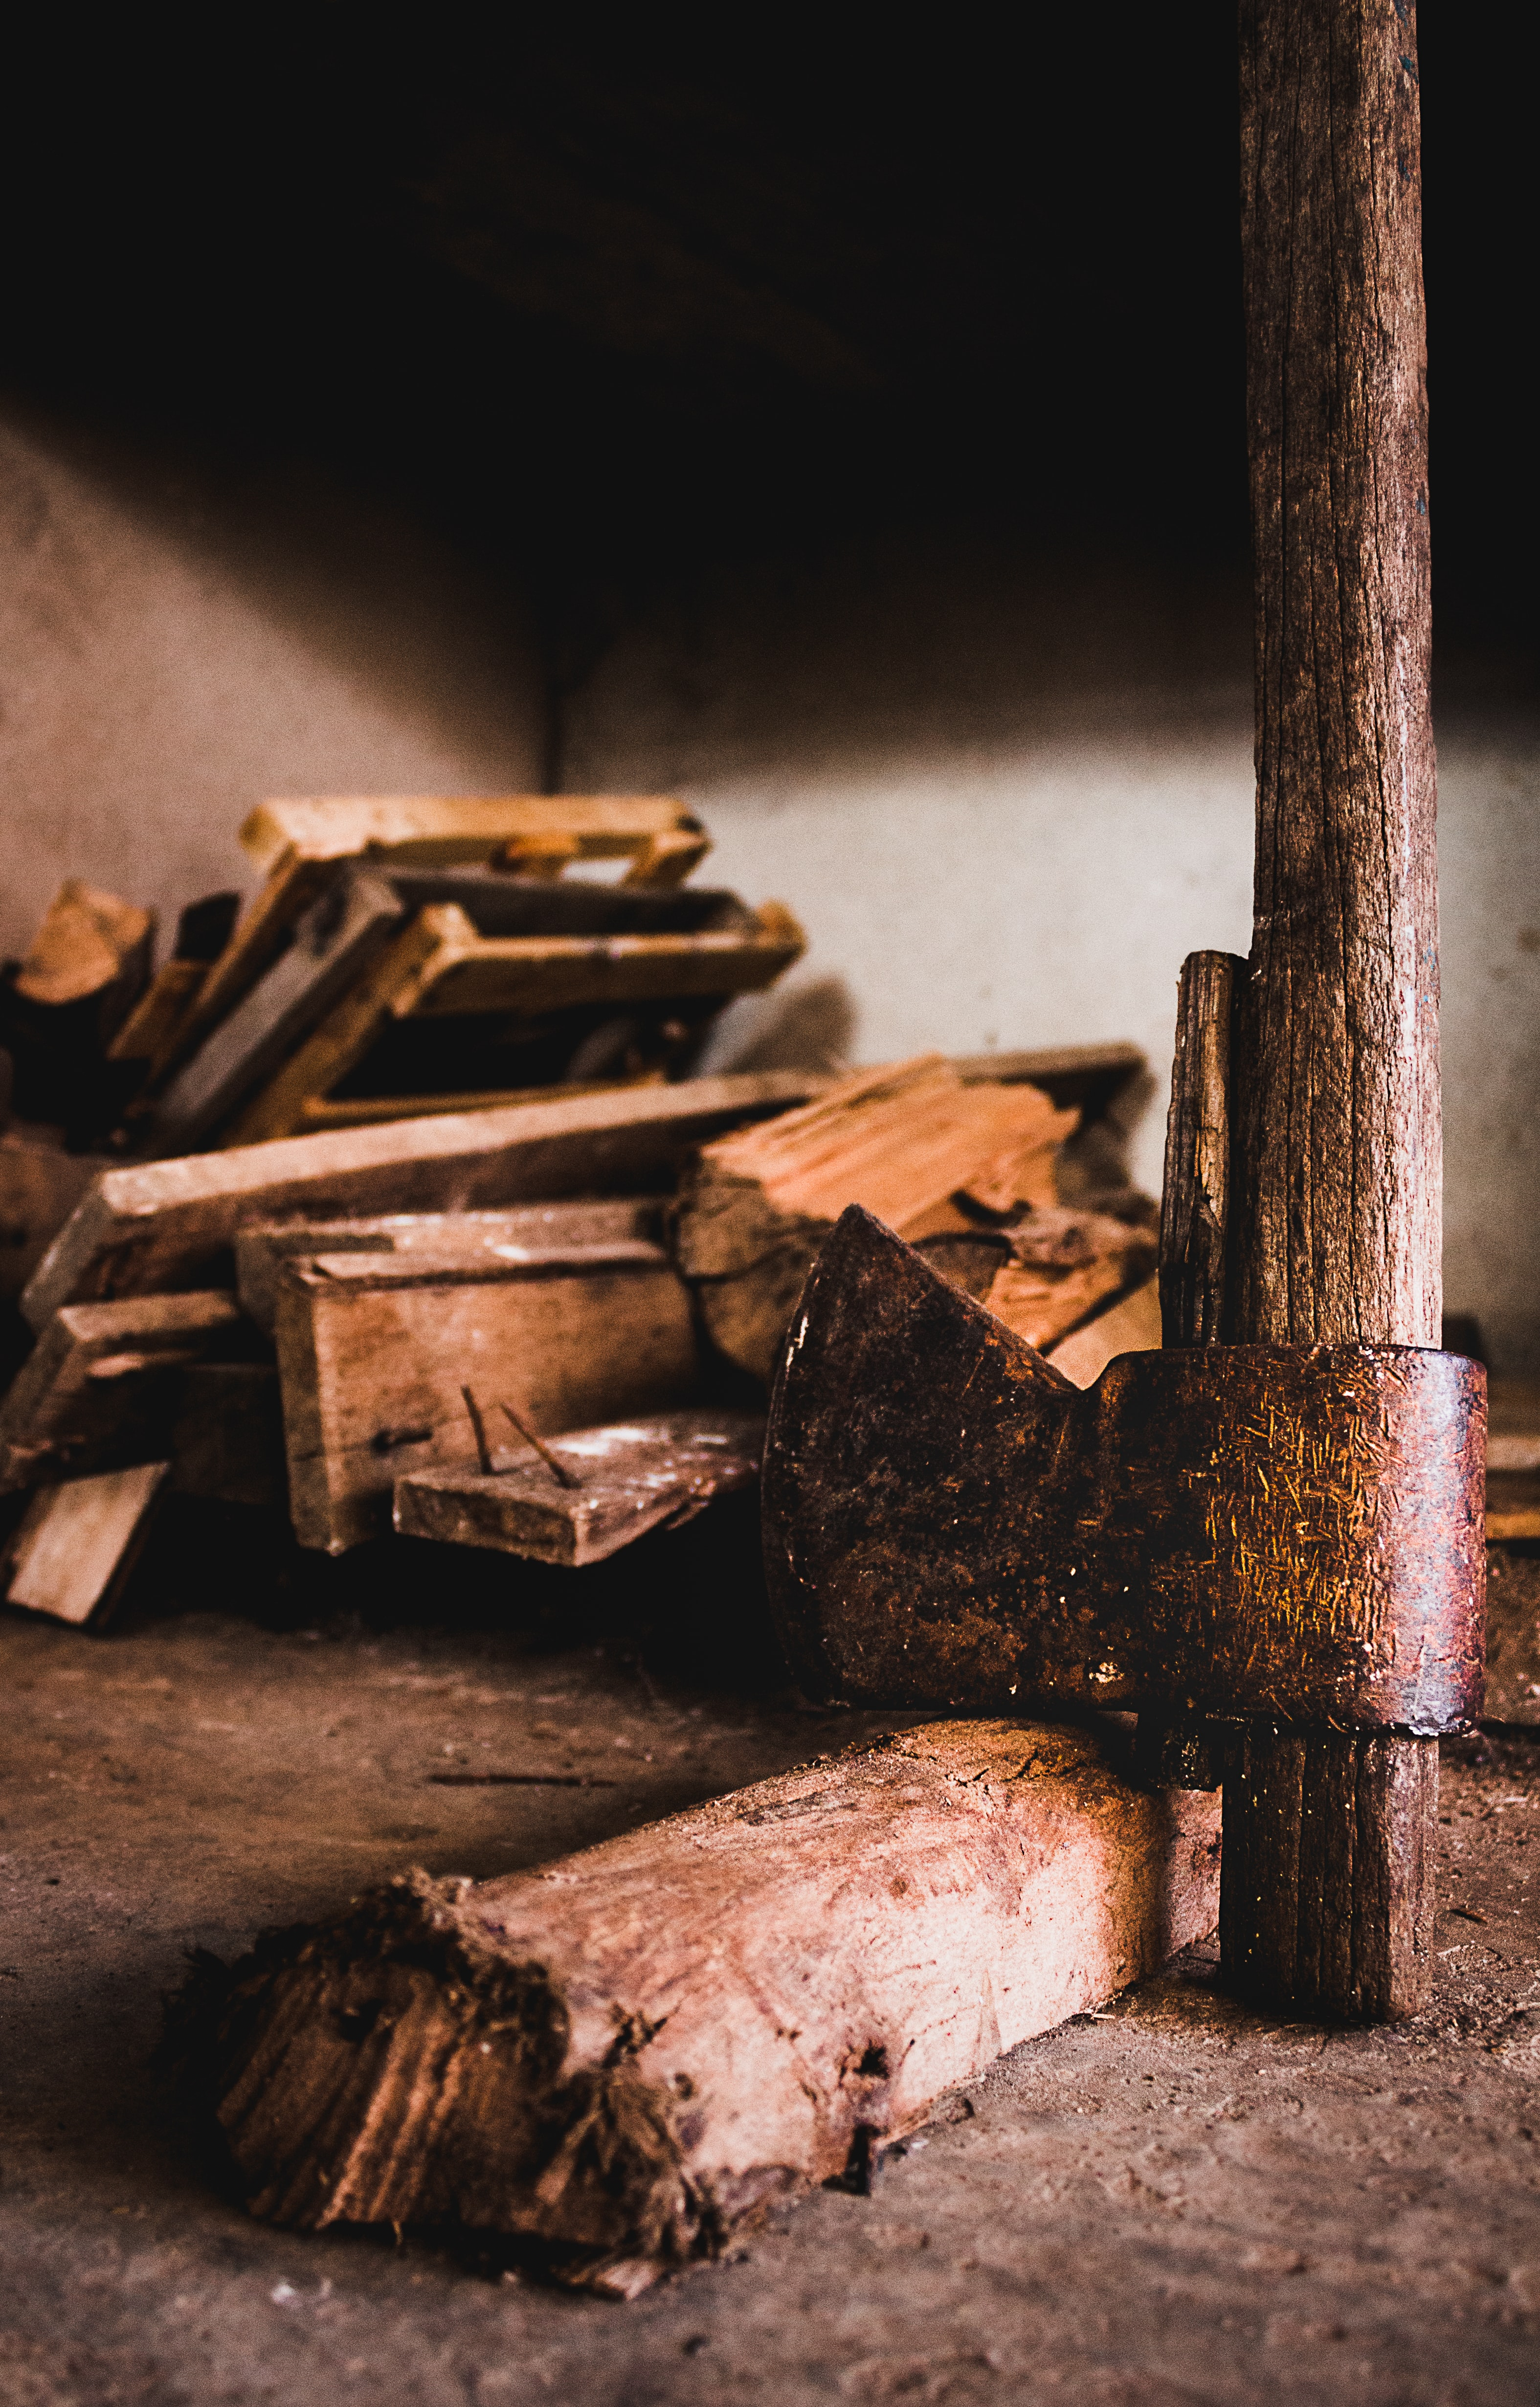 An old axe and a stack of firewood.